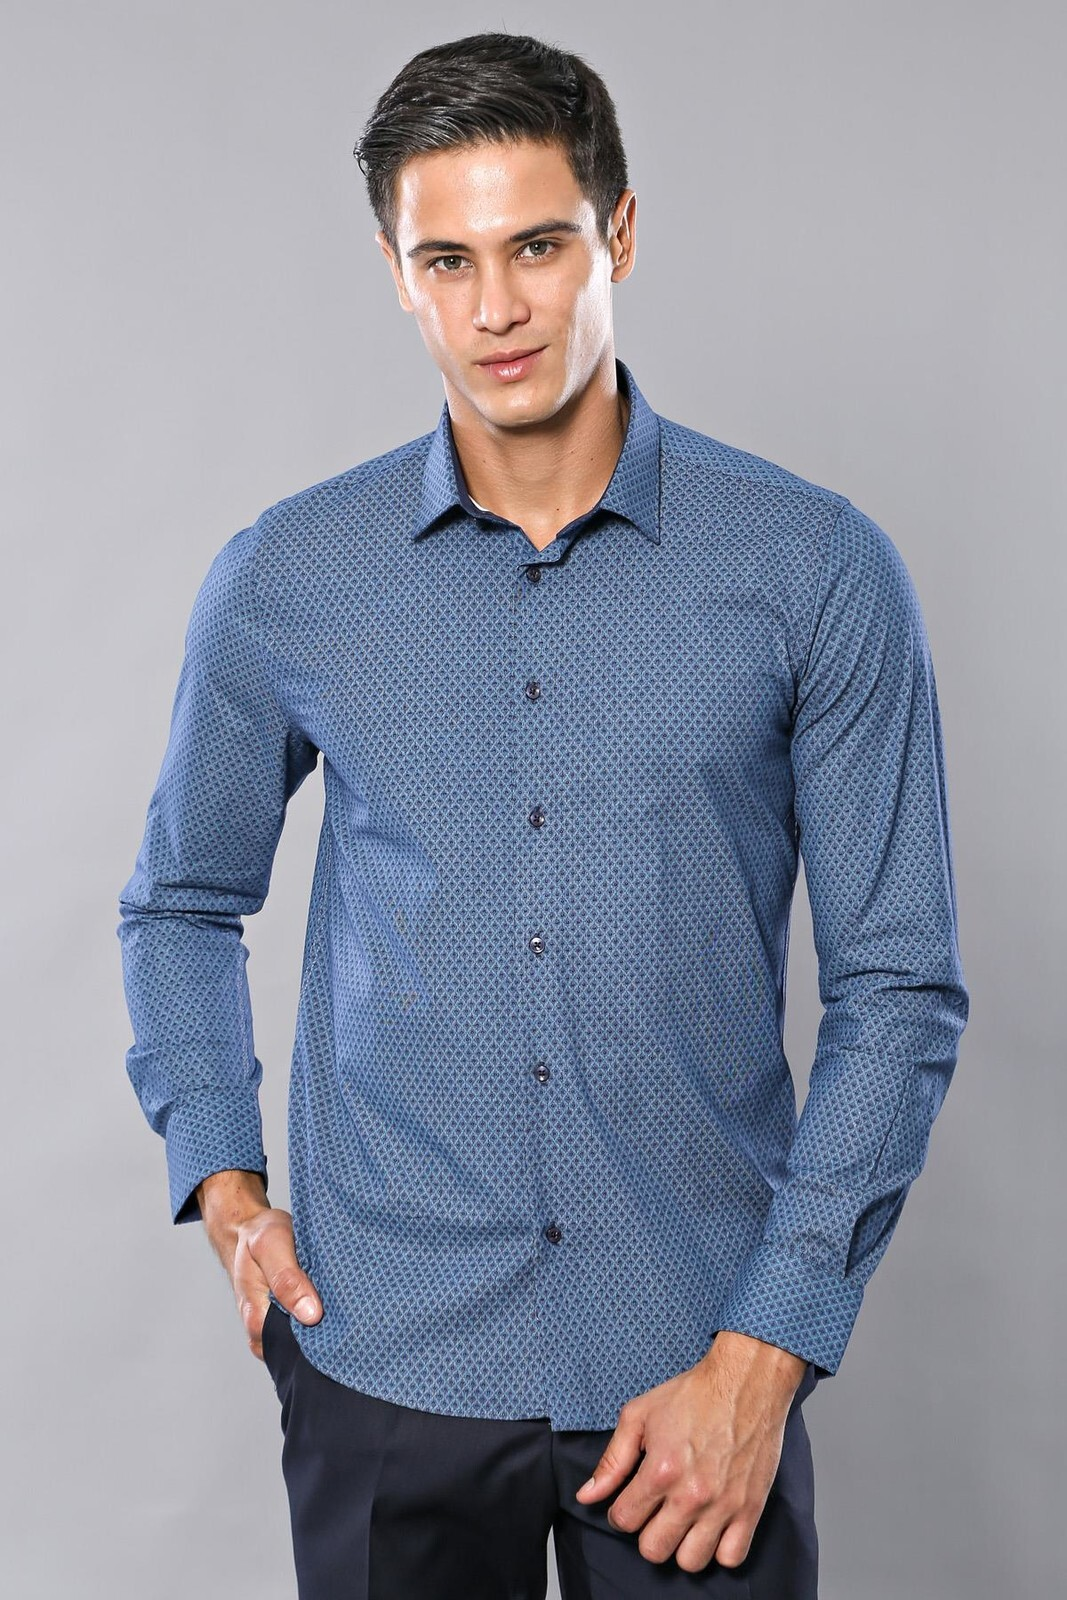 Long Sleeves Patterned Blue Shirt